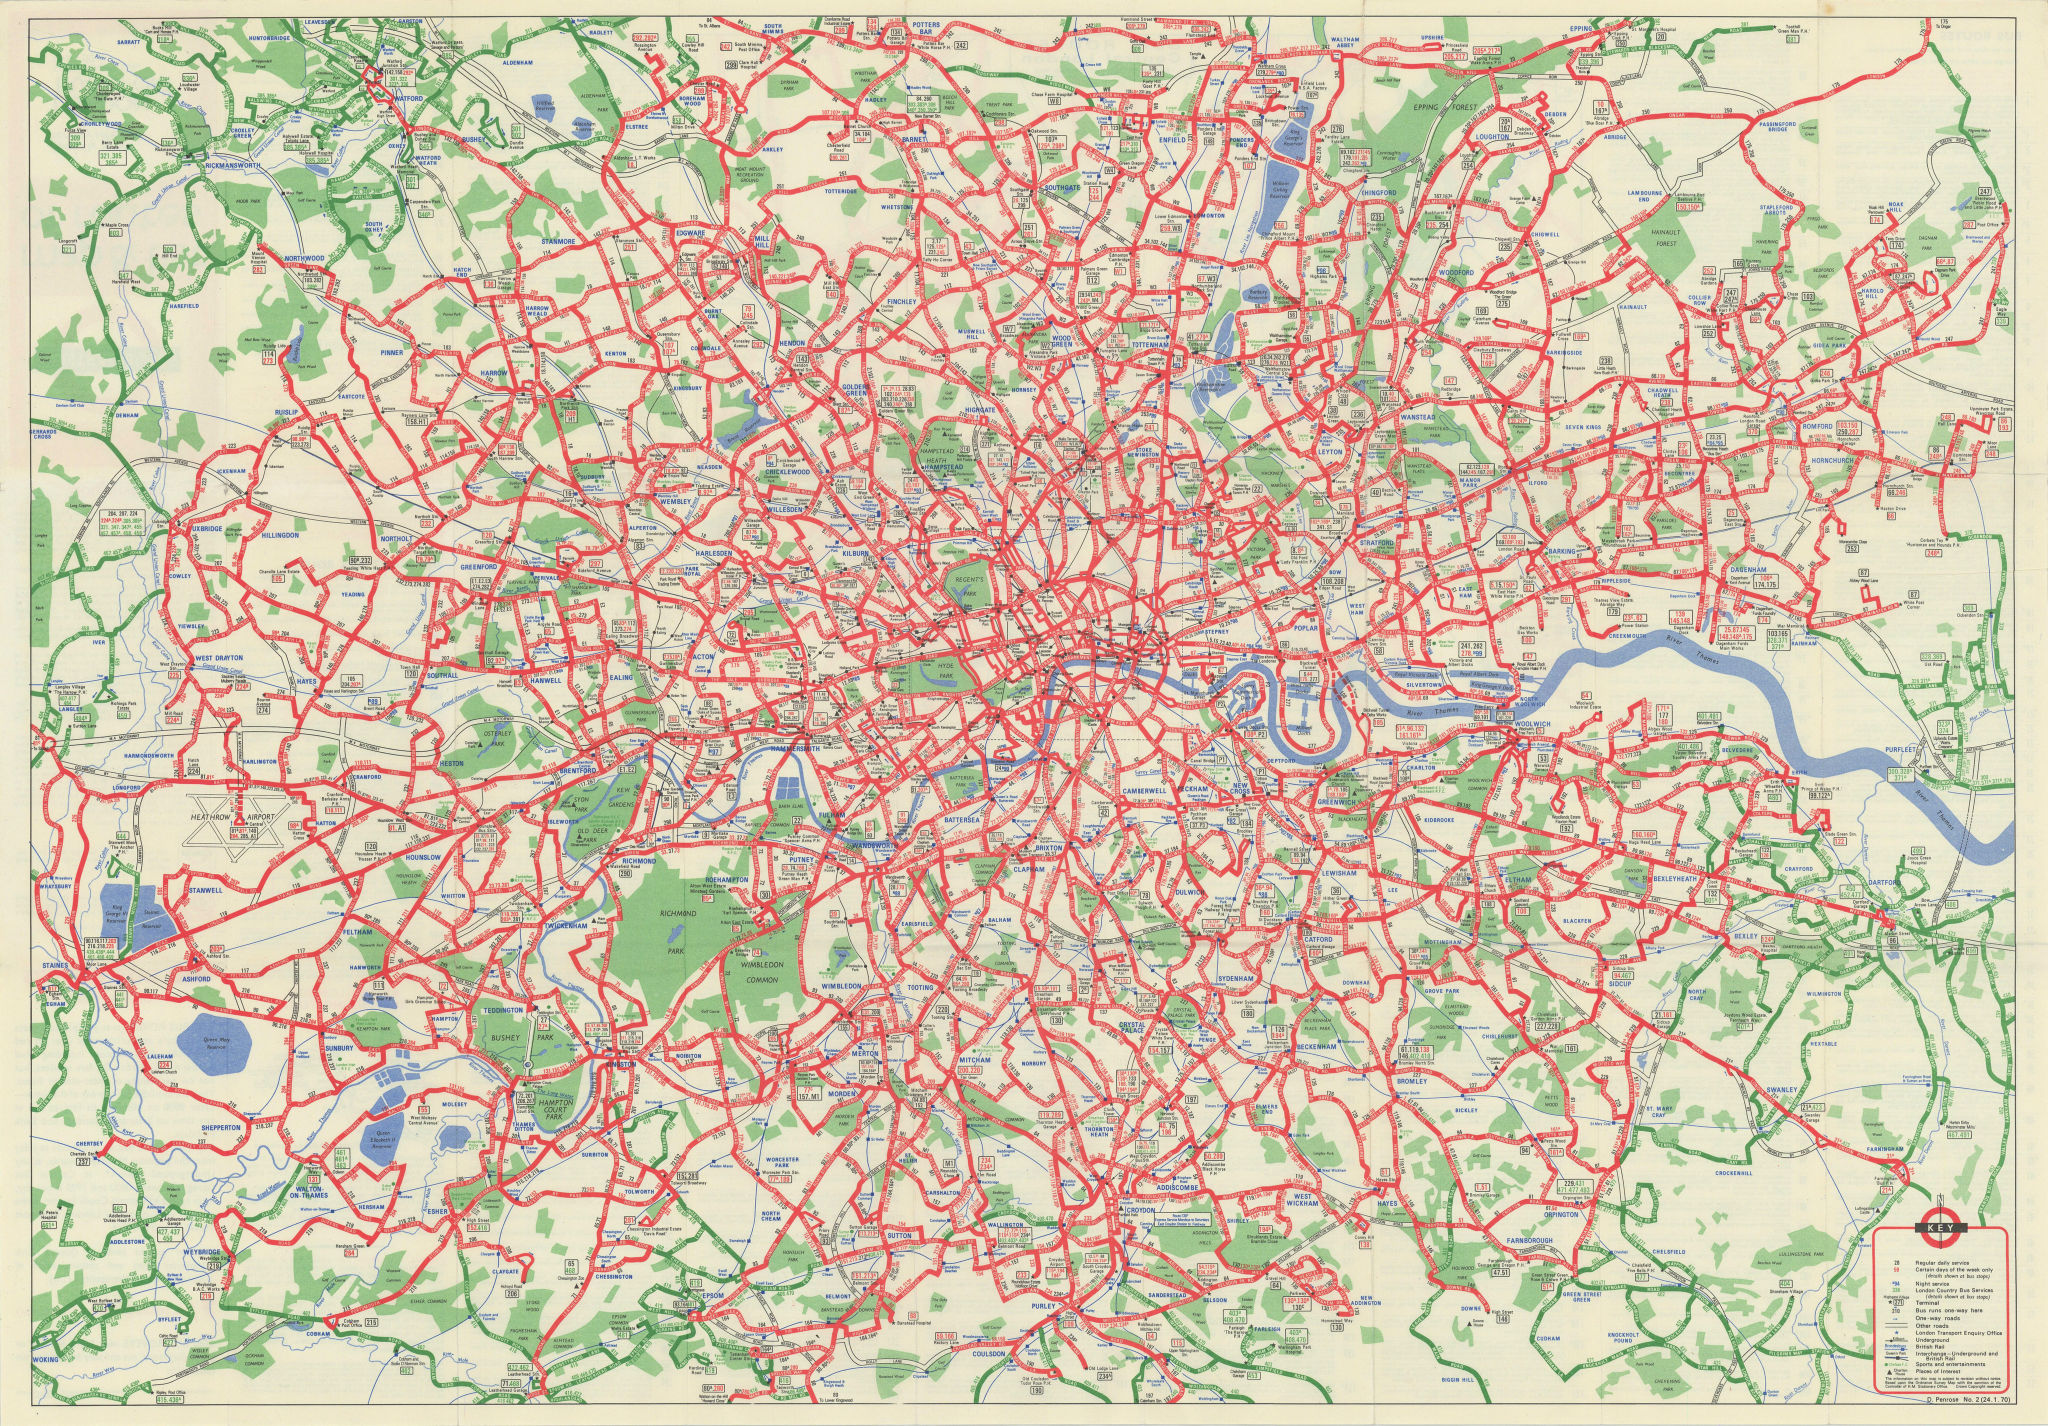 London Transport Central Buses map & list of routes. PENROSE #2 1970 old